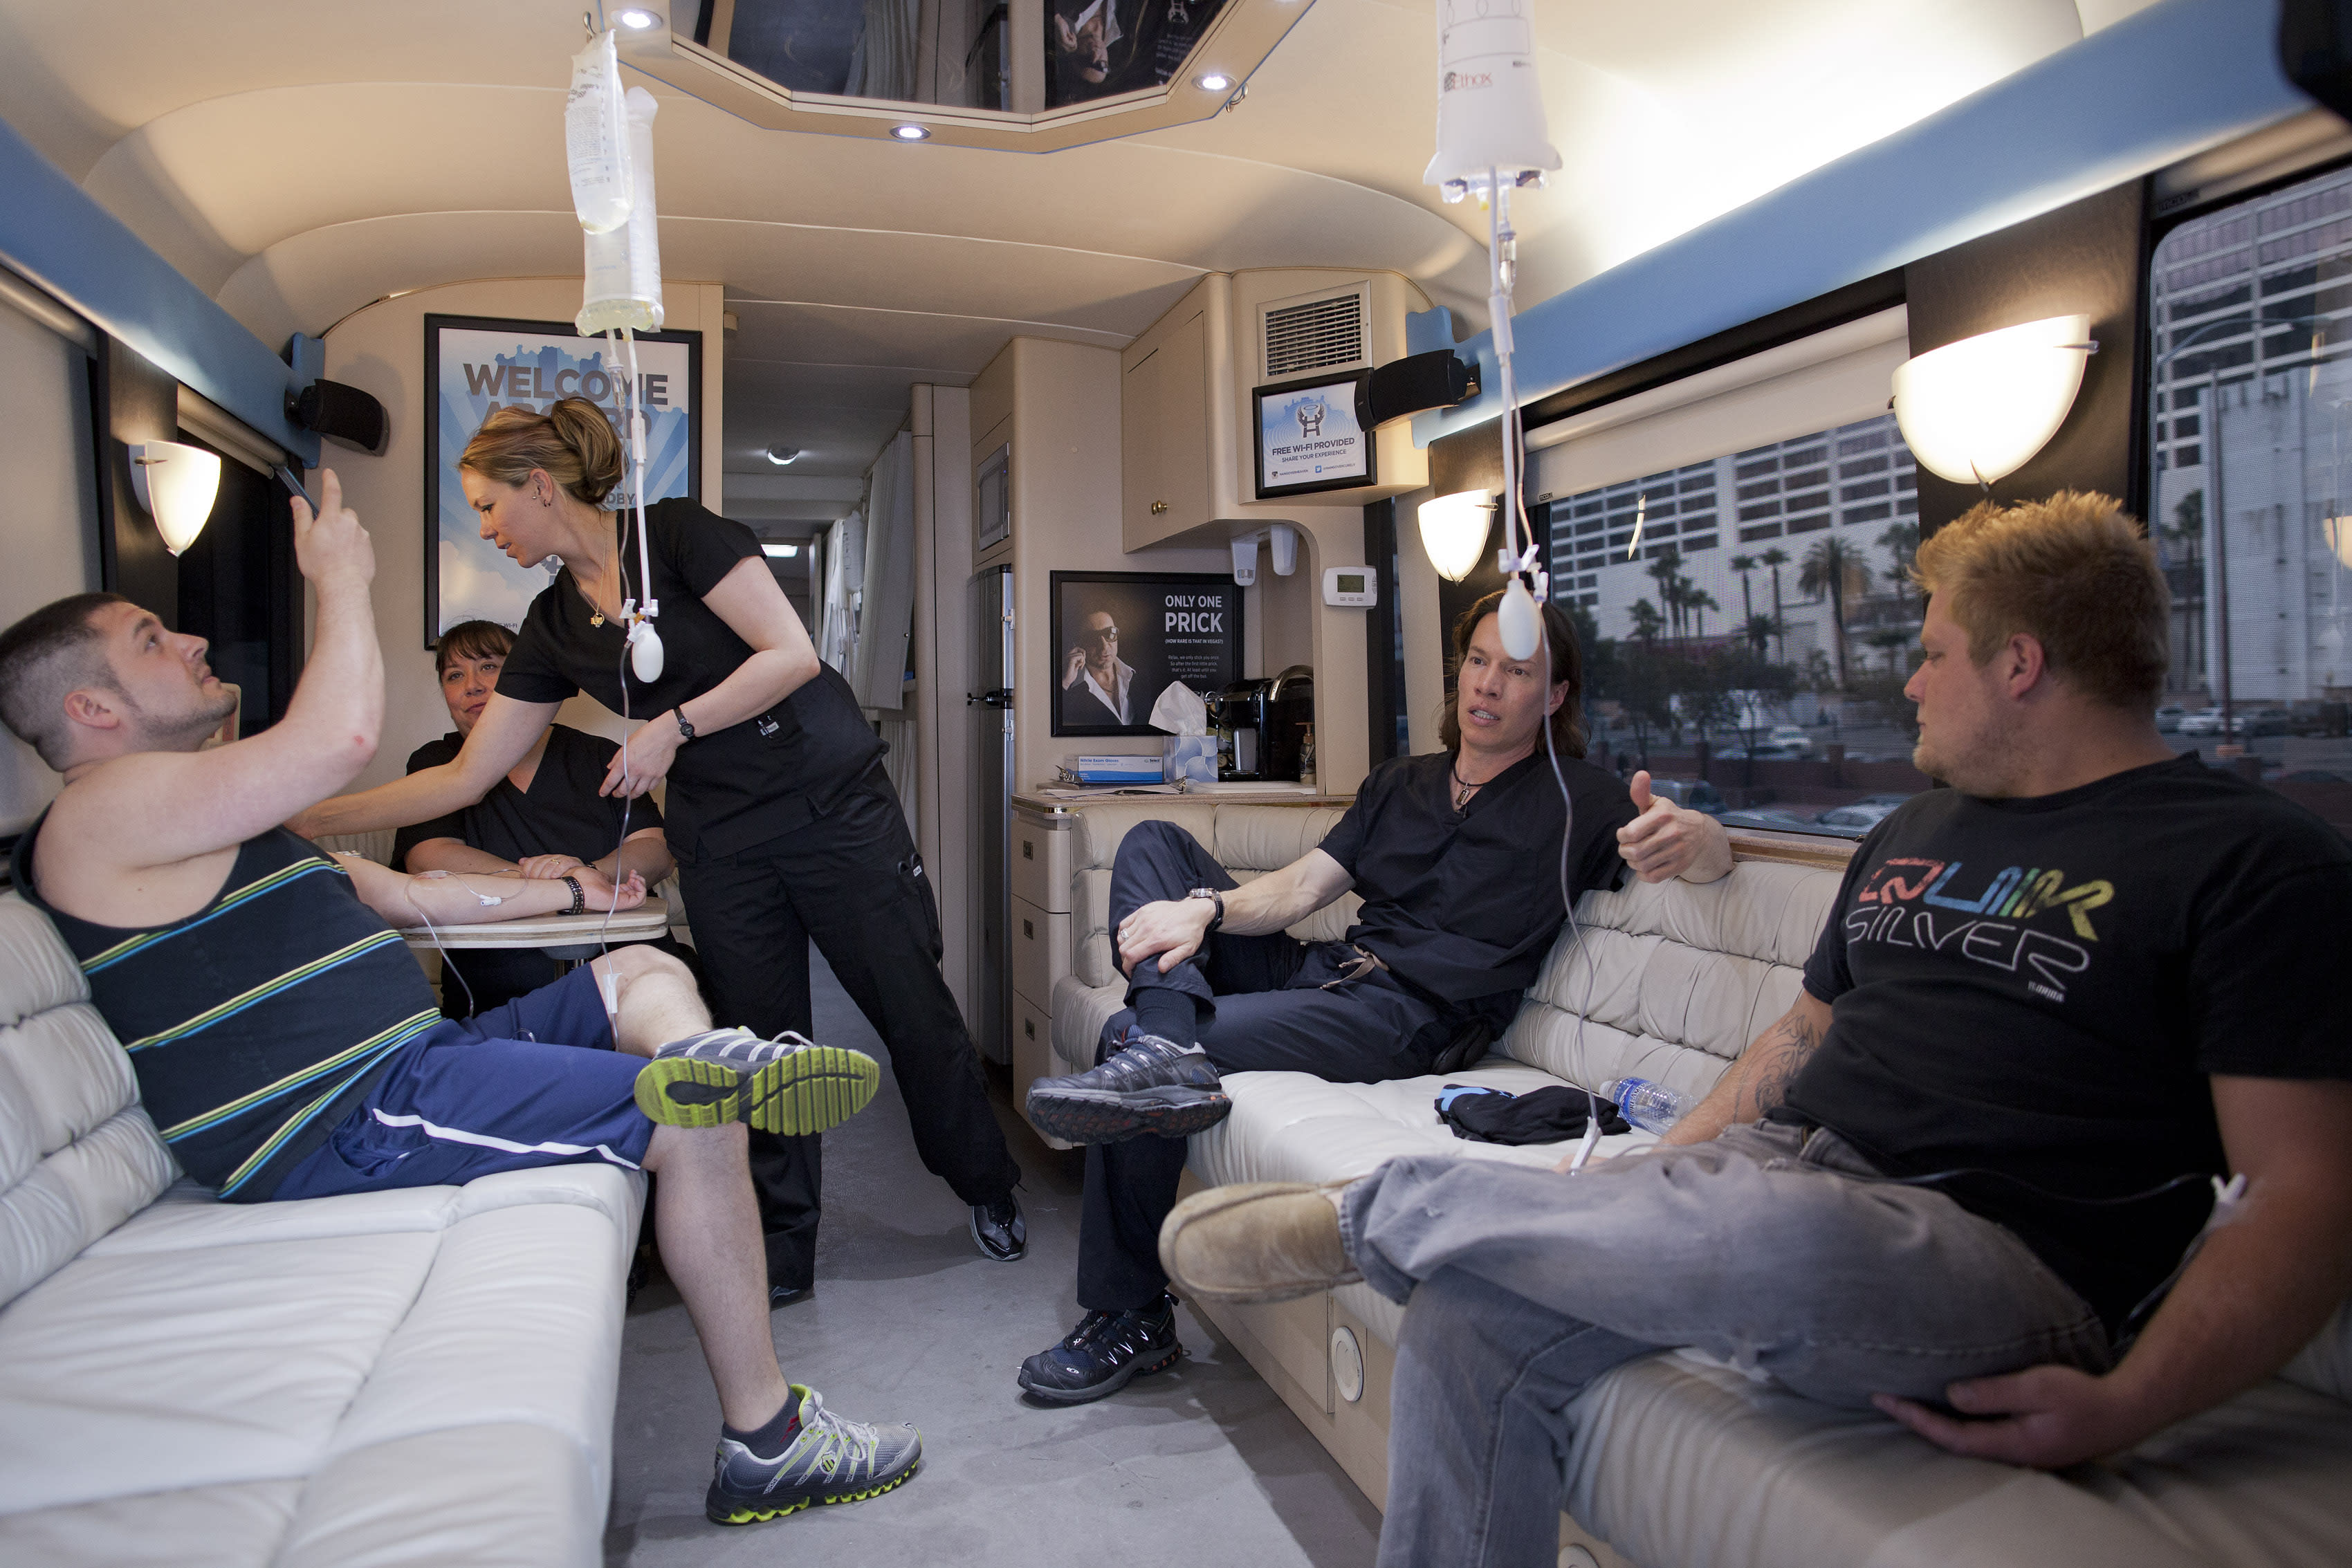 Bryan Dalia, left, of Caldwell, N.J. makes a photo of his IV bag while being treated on the Hangover Heaven bus by EMT Stacey Kreitlow, second from left, and Dr. Jason Burke, second from right, as another patient named Alex, right, looks on, Saturday, April 14, 2012, in Las Vegas. The bus picked up 16 patients on its first weekend as a mobile treatment center for tourists who spent the night before drinking in all the nightlife Las Vegas has to offer. For a fee, they get a quick morning-after way to rehydrate, rejuvenate and resume their revelry. (AP Photo/Julie Jacobson)